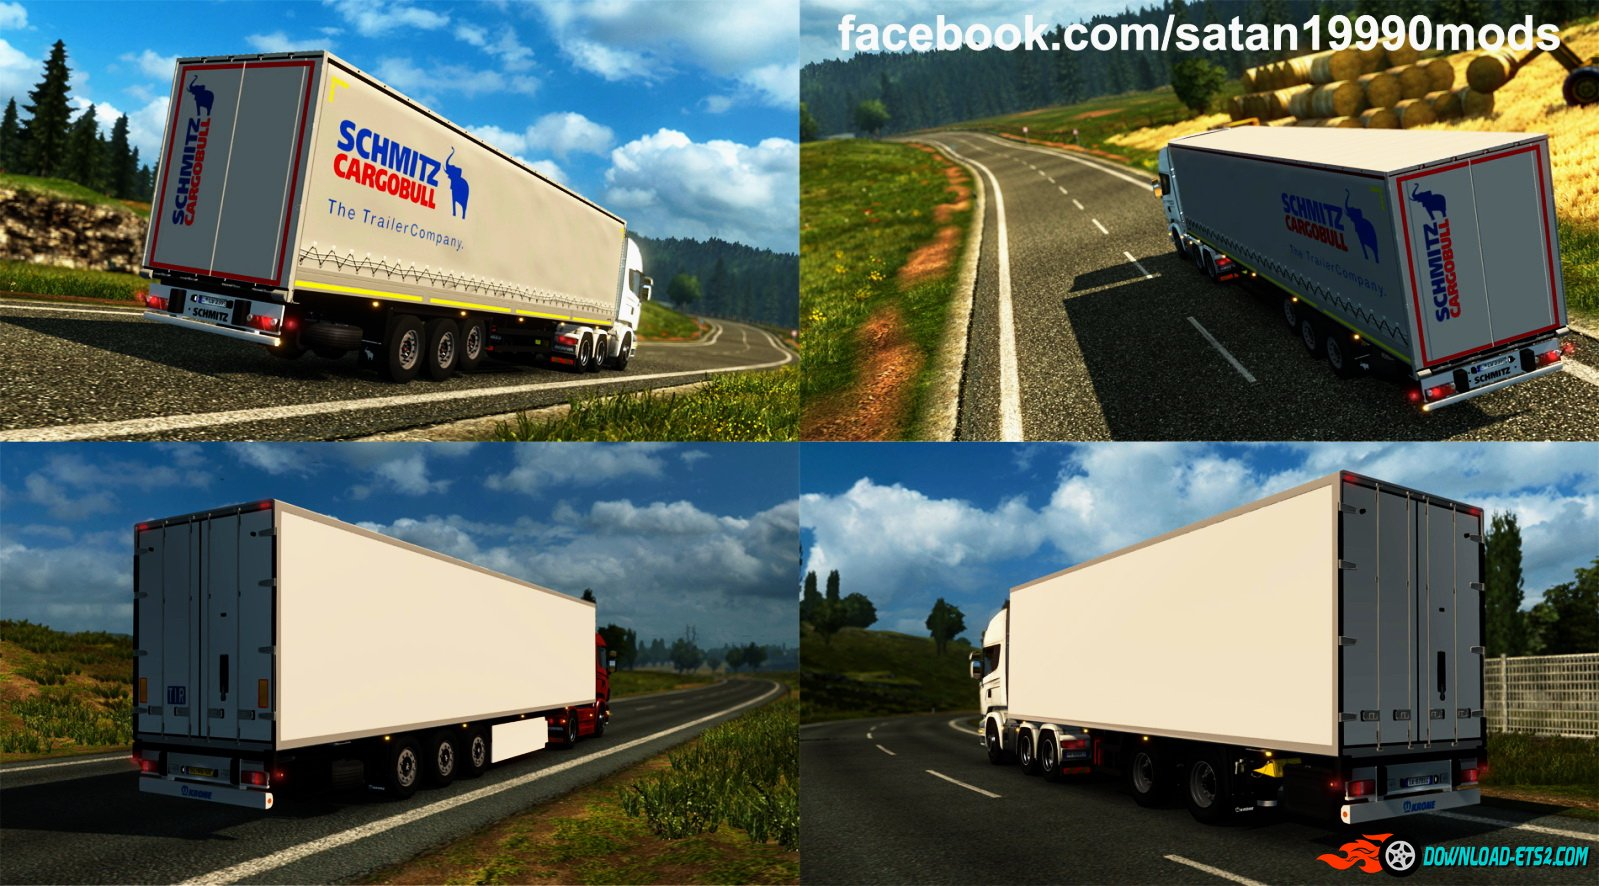 Trailers Mod Pack v3.6 by satan19990